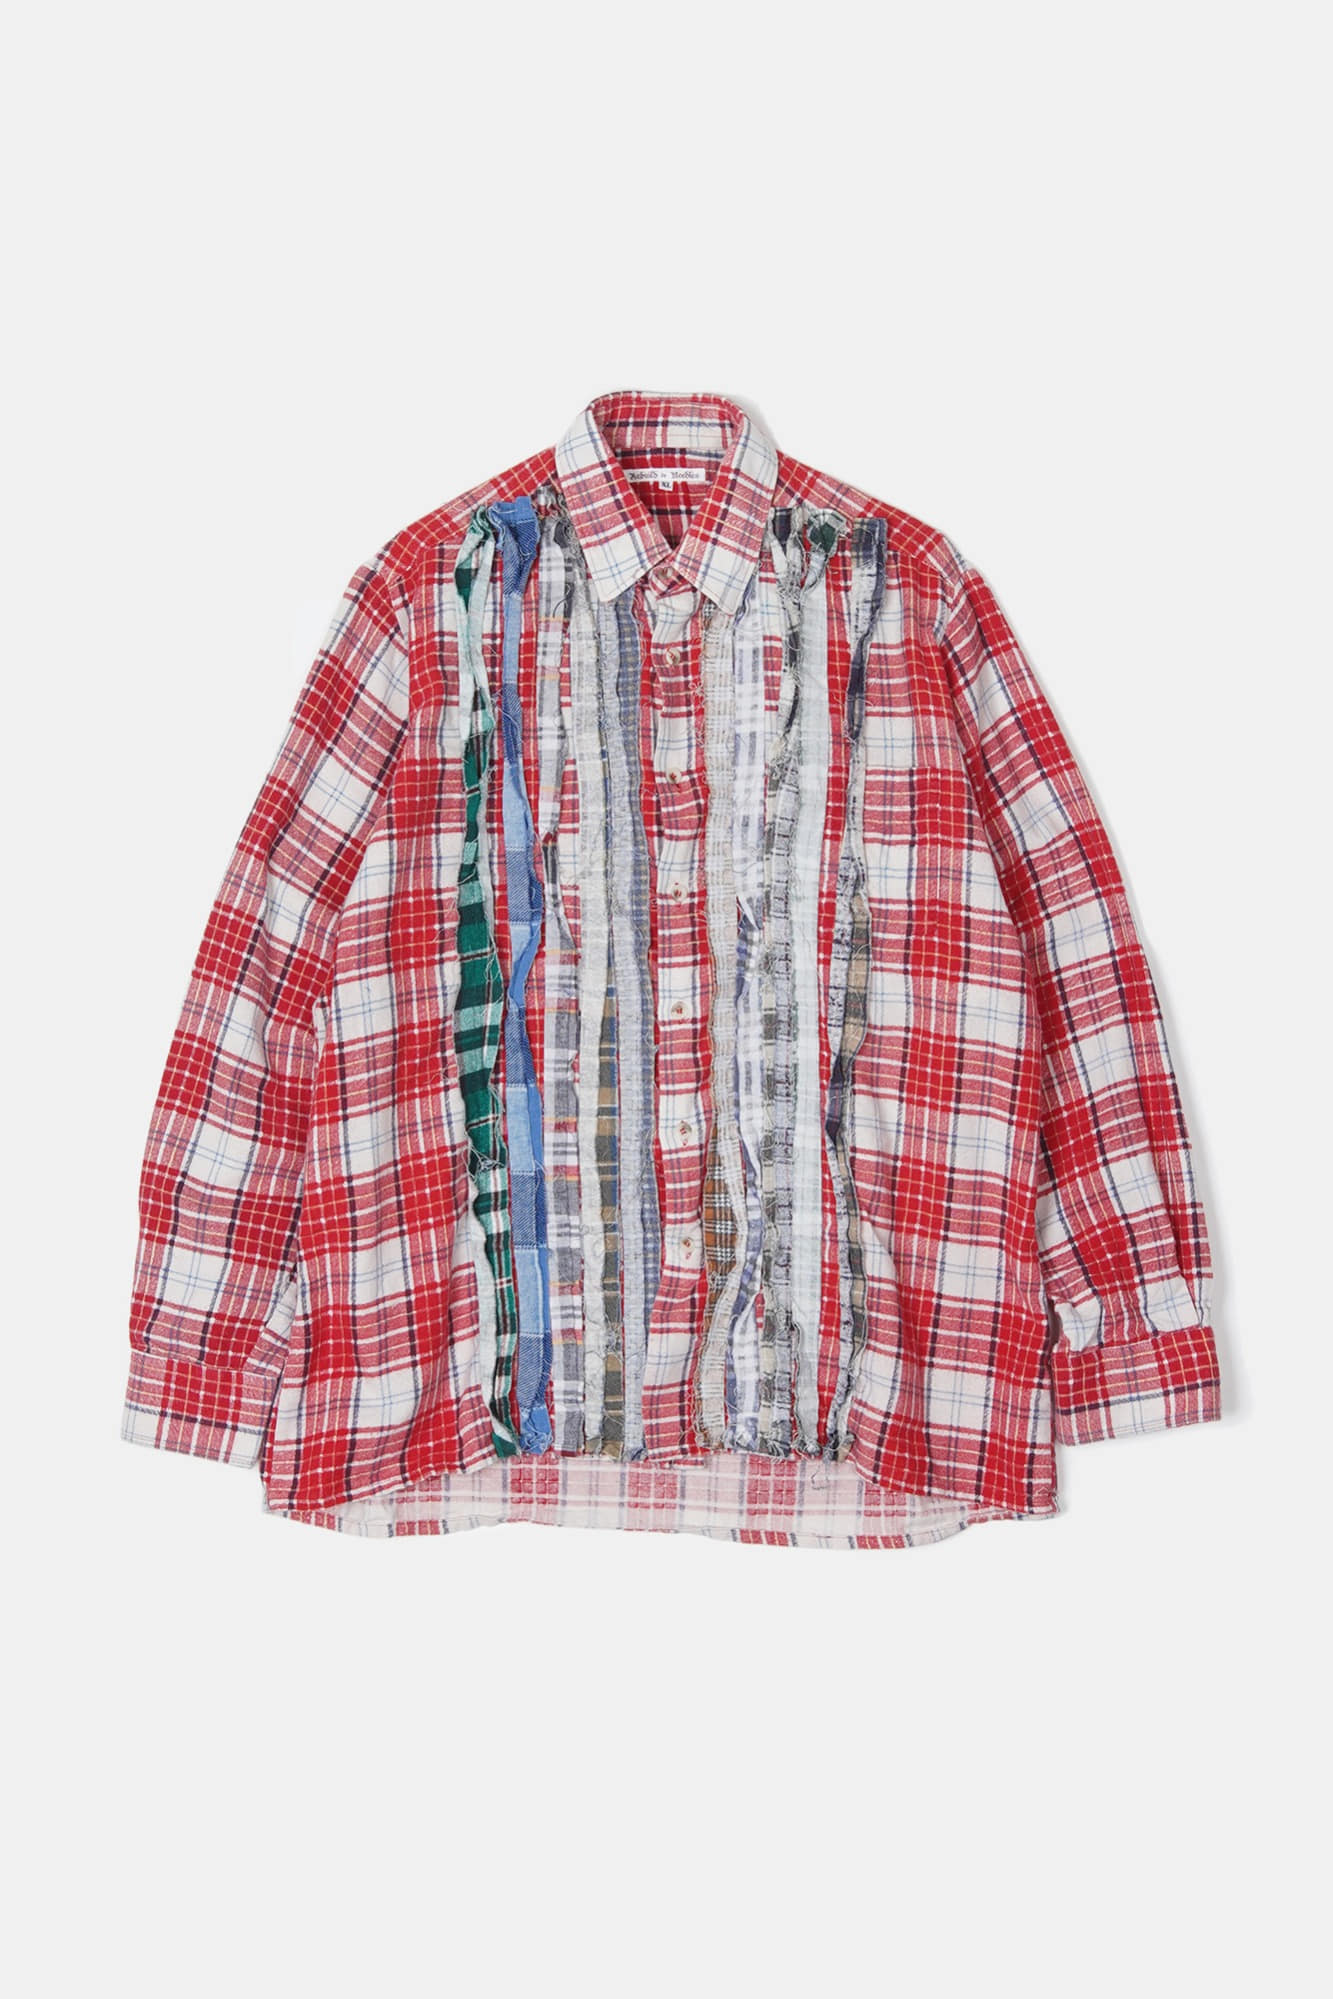 REBUILD BY NEEDLES Flannel Ribbon Shirt 6